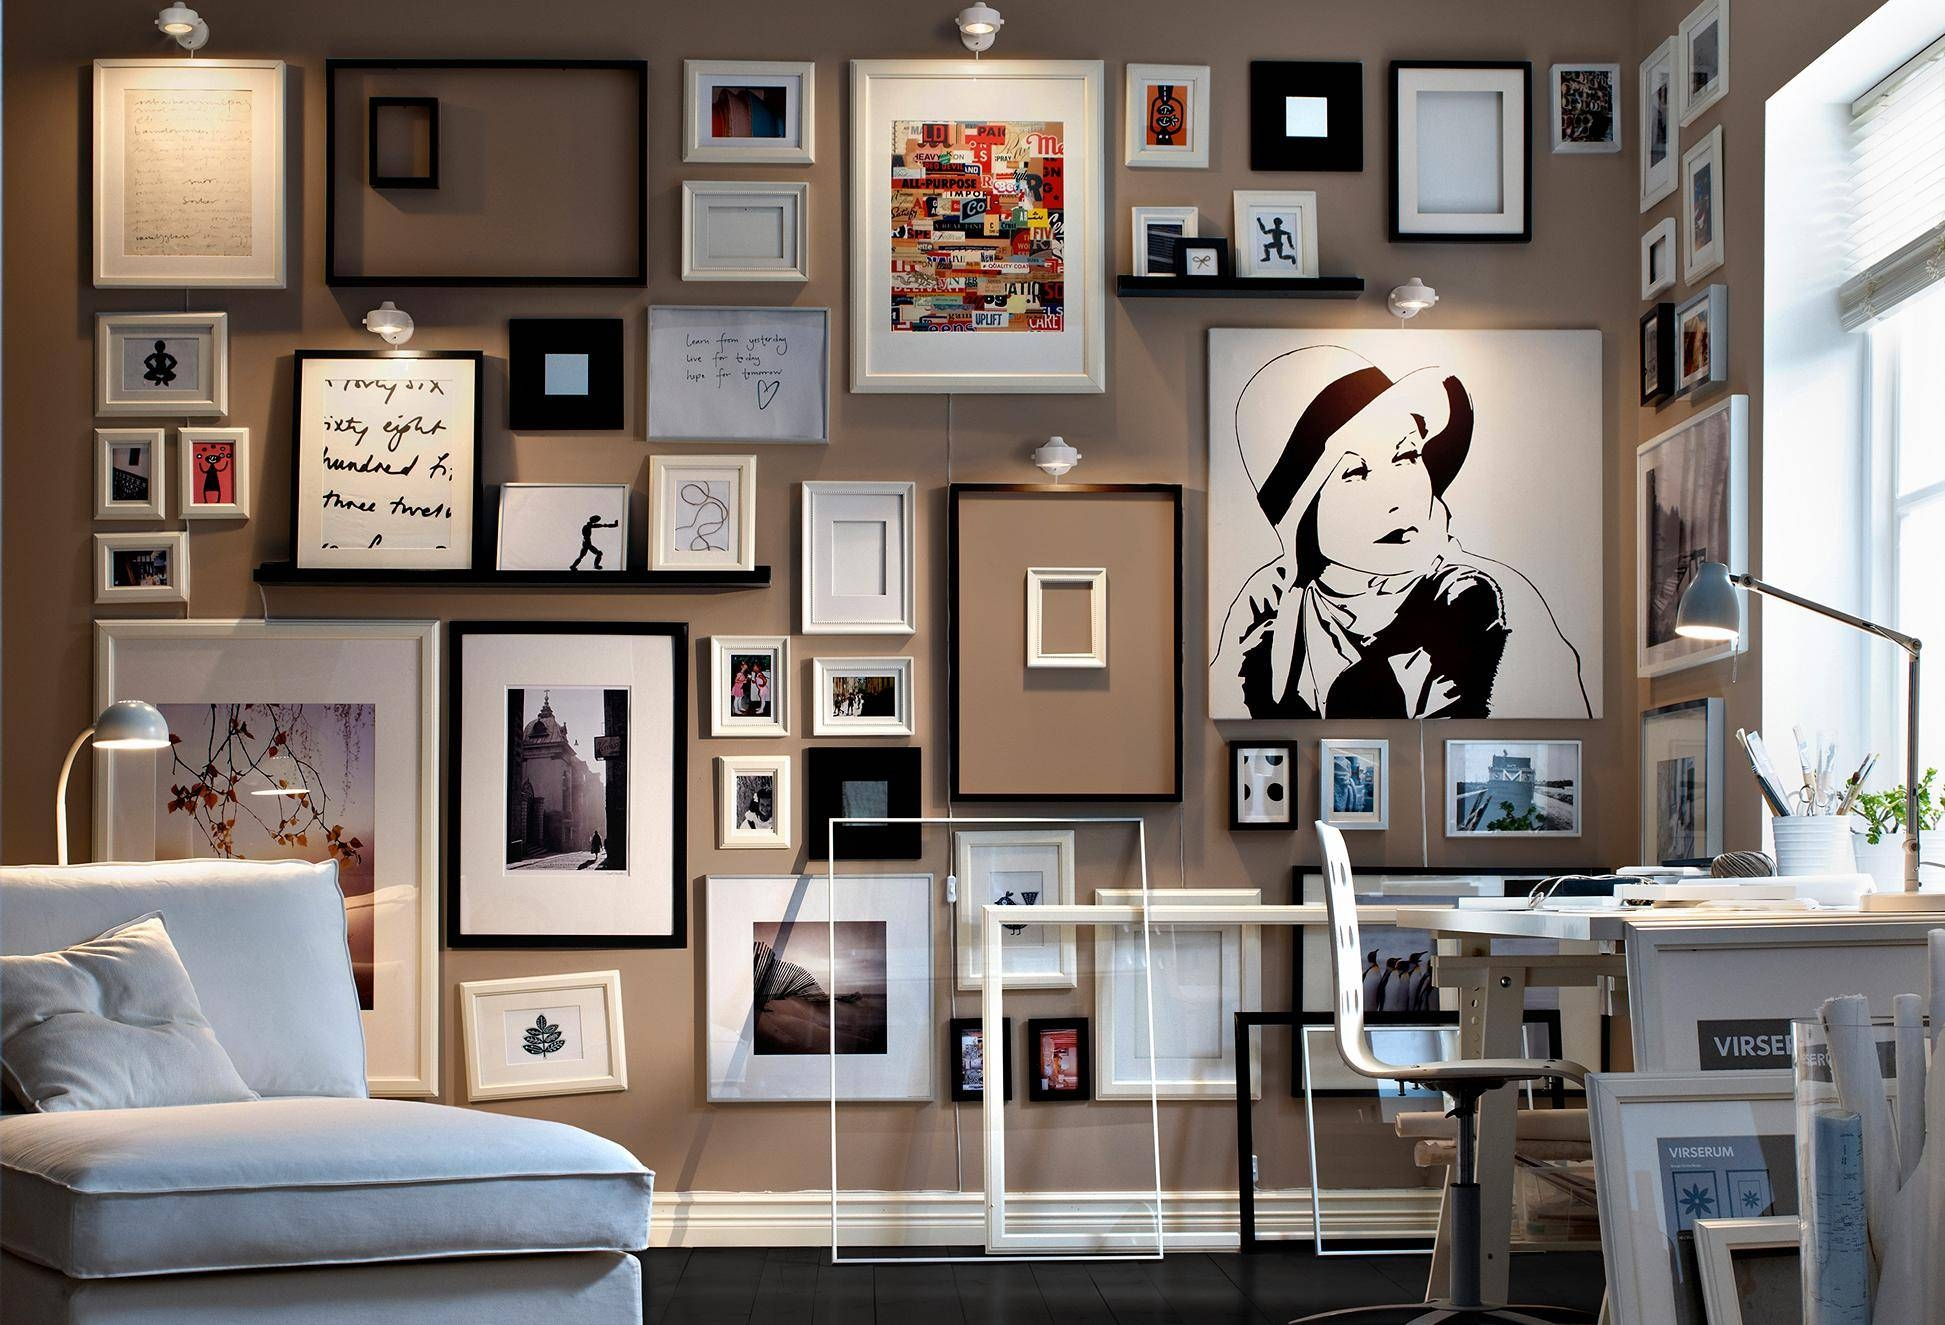 Wall Art Designs: Awesome Designed Wall Of Art With Randomly Throughout Most Popular Photography Wall Art (View 23 of 25)